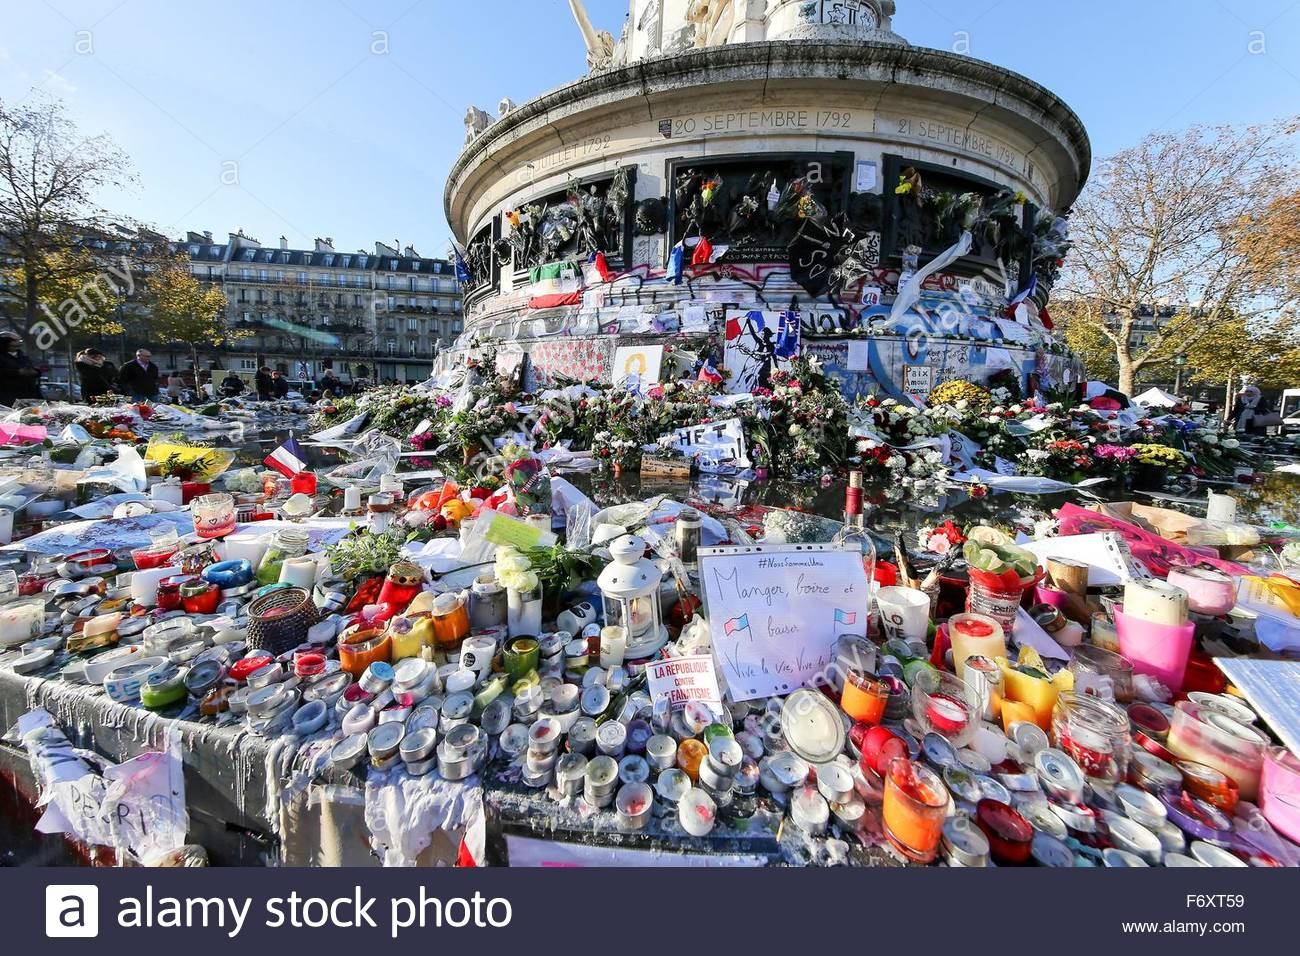 Paris, France. novembre 21st, 2015. FRANCE, Paris: Flowers, candles and messages are seen at a makeshift memorial Stock Photo